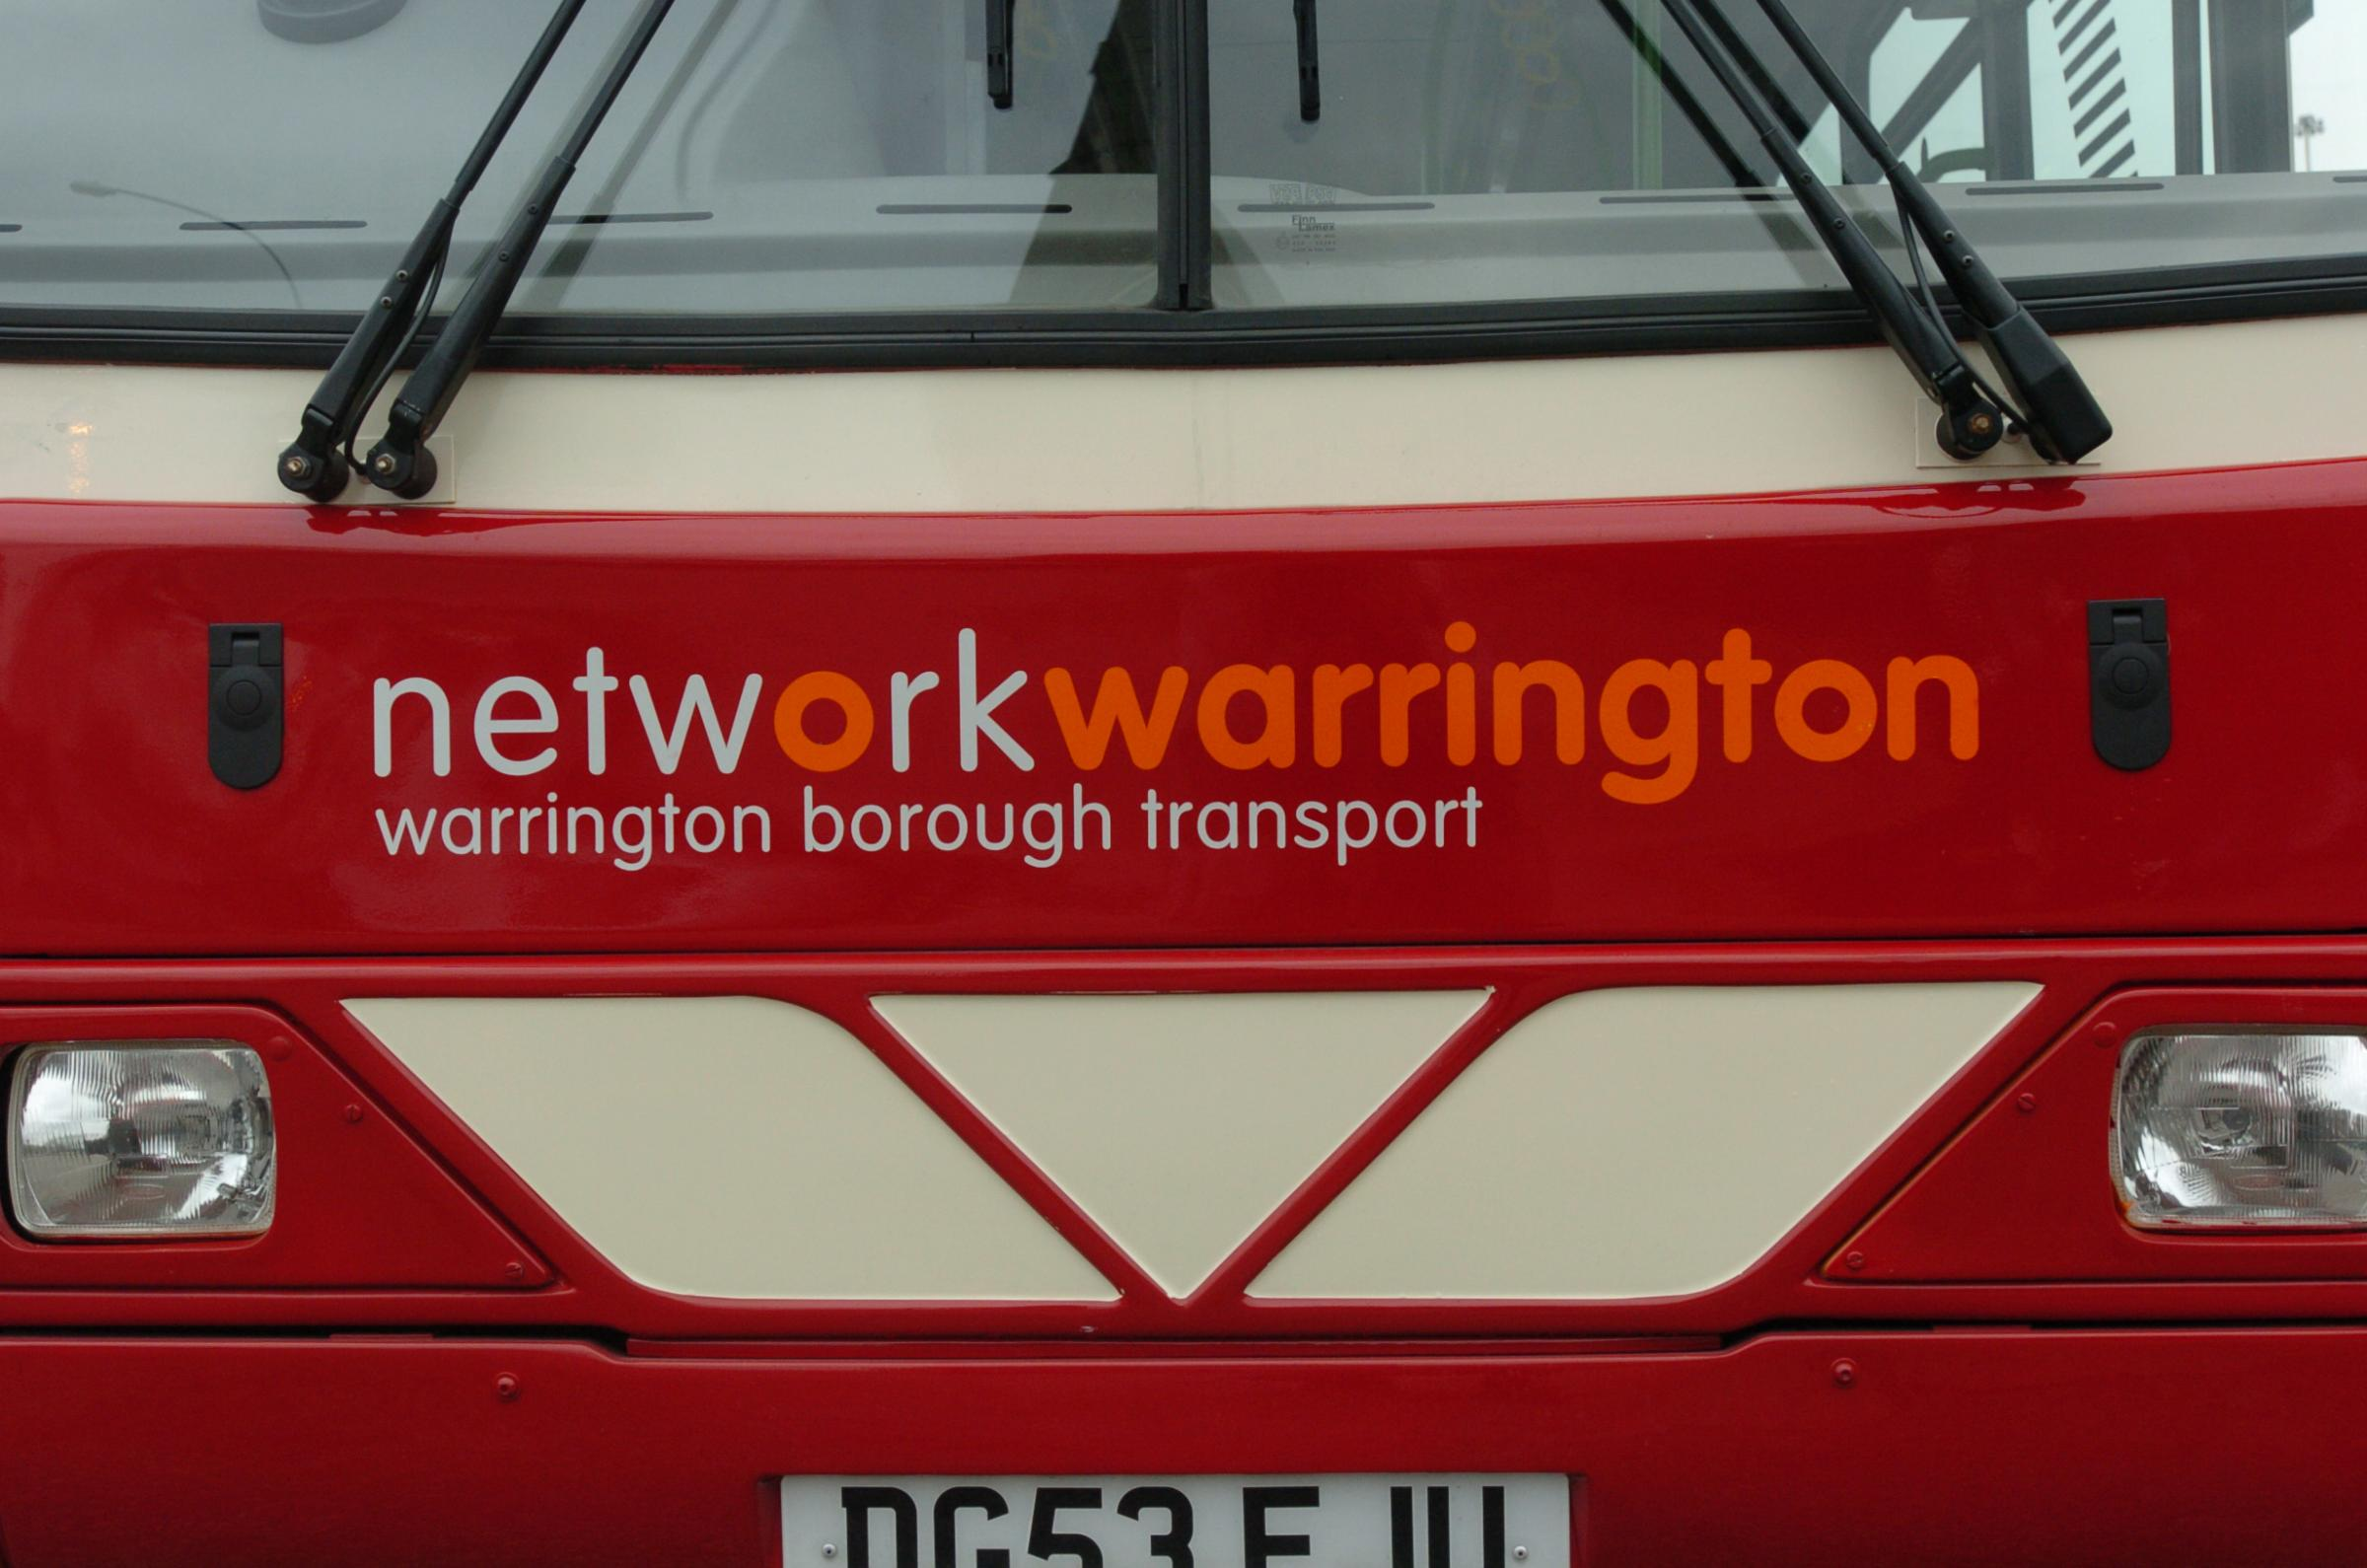 Network Warrington night buses to continue for 'foreseeable future'